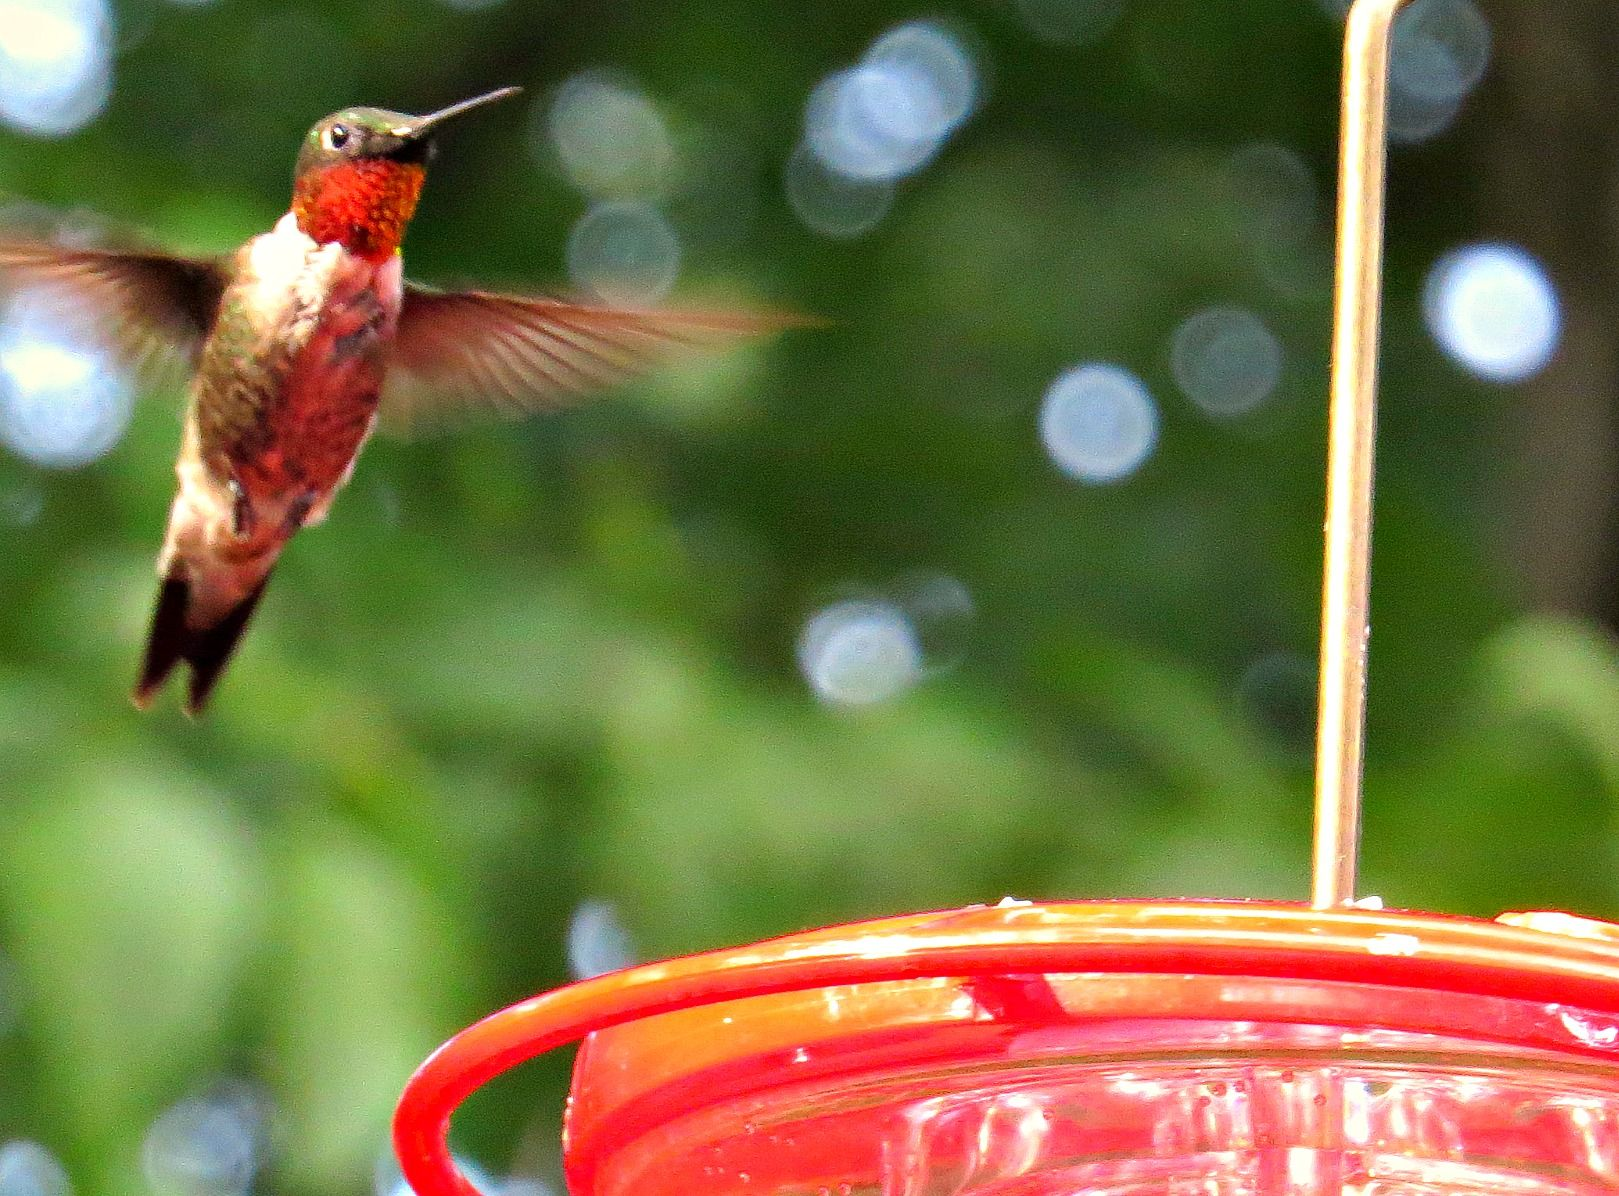 Ruby-throated Hummingbird (male): 31 July 2014, 4:50 p.m., Falls Church, VA (our backyard), 84 degrees, mostly sunny, calm